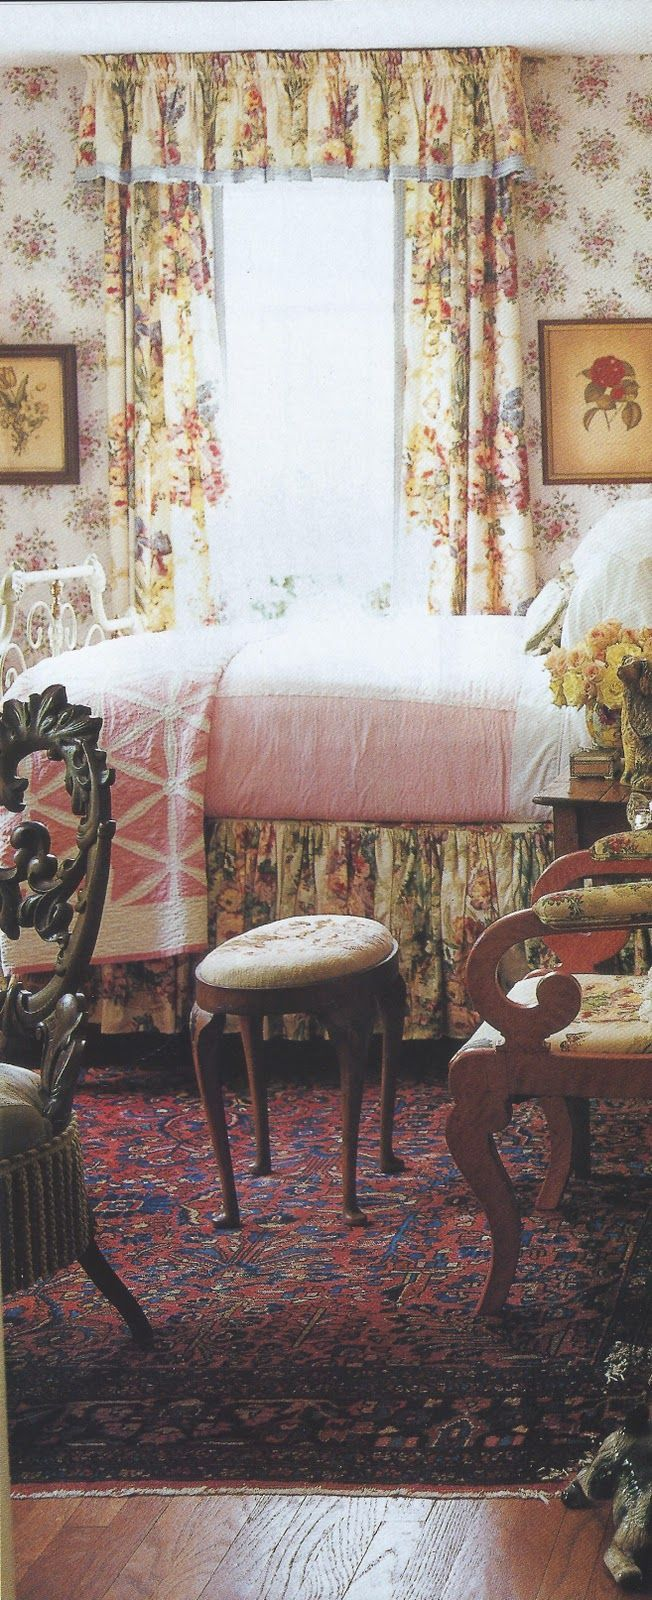 english country bedrooms Image Search Results